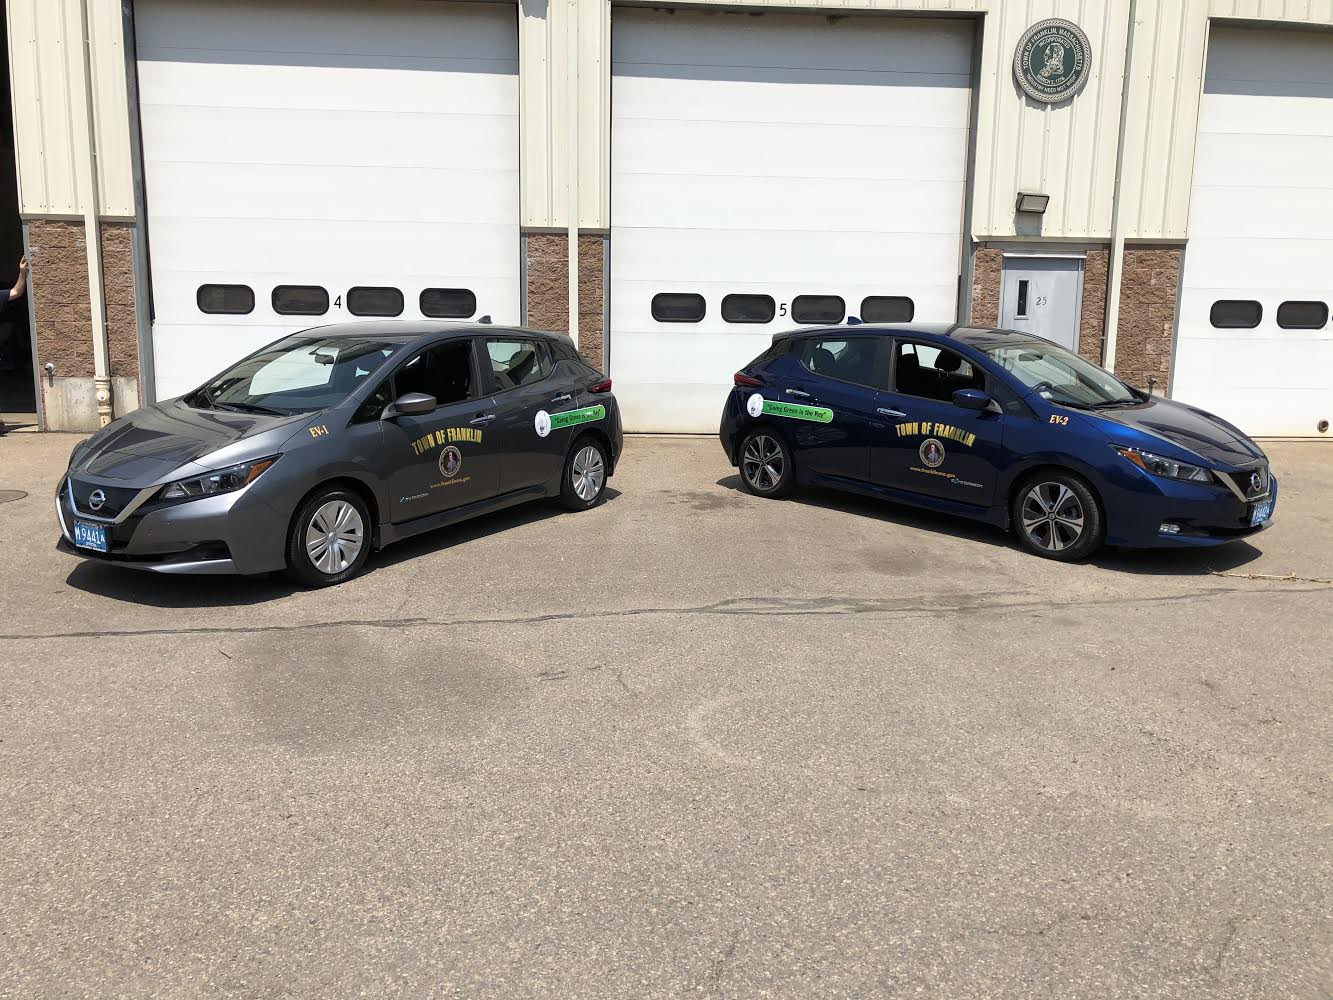 Town of Franklin acquires 2 electric vehicles with grant